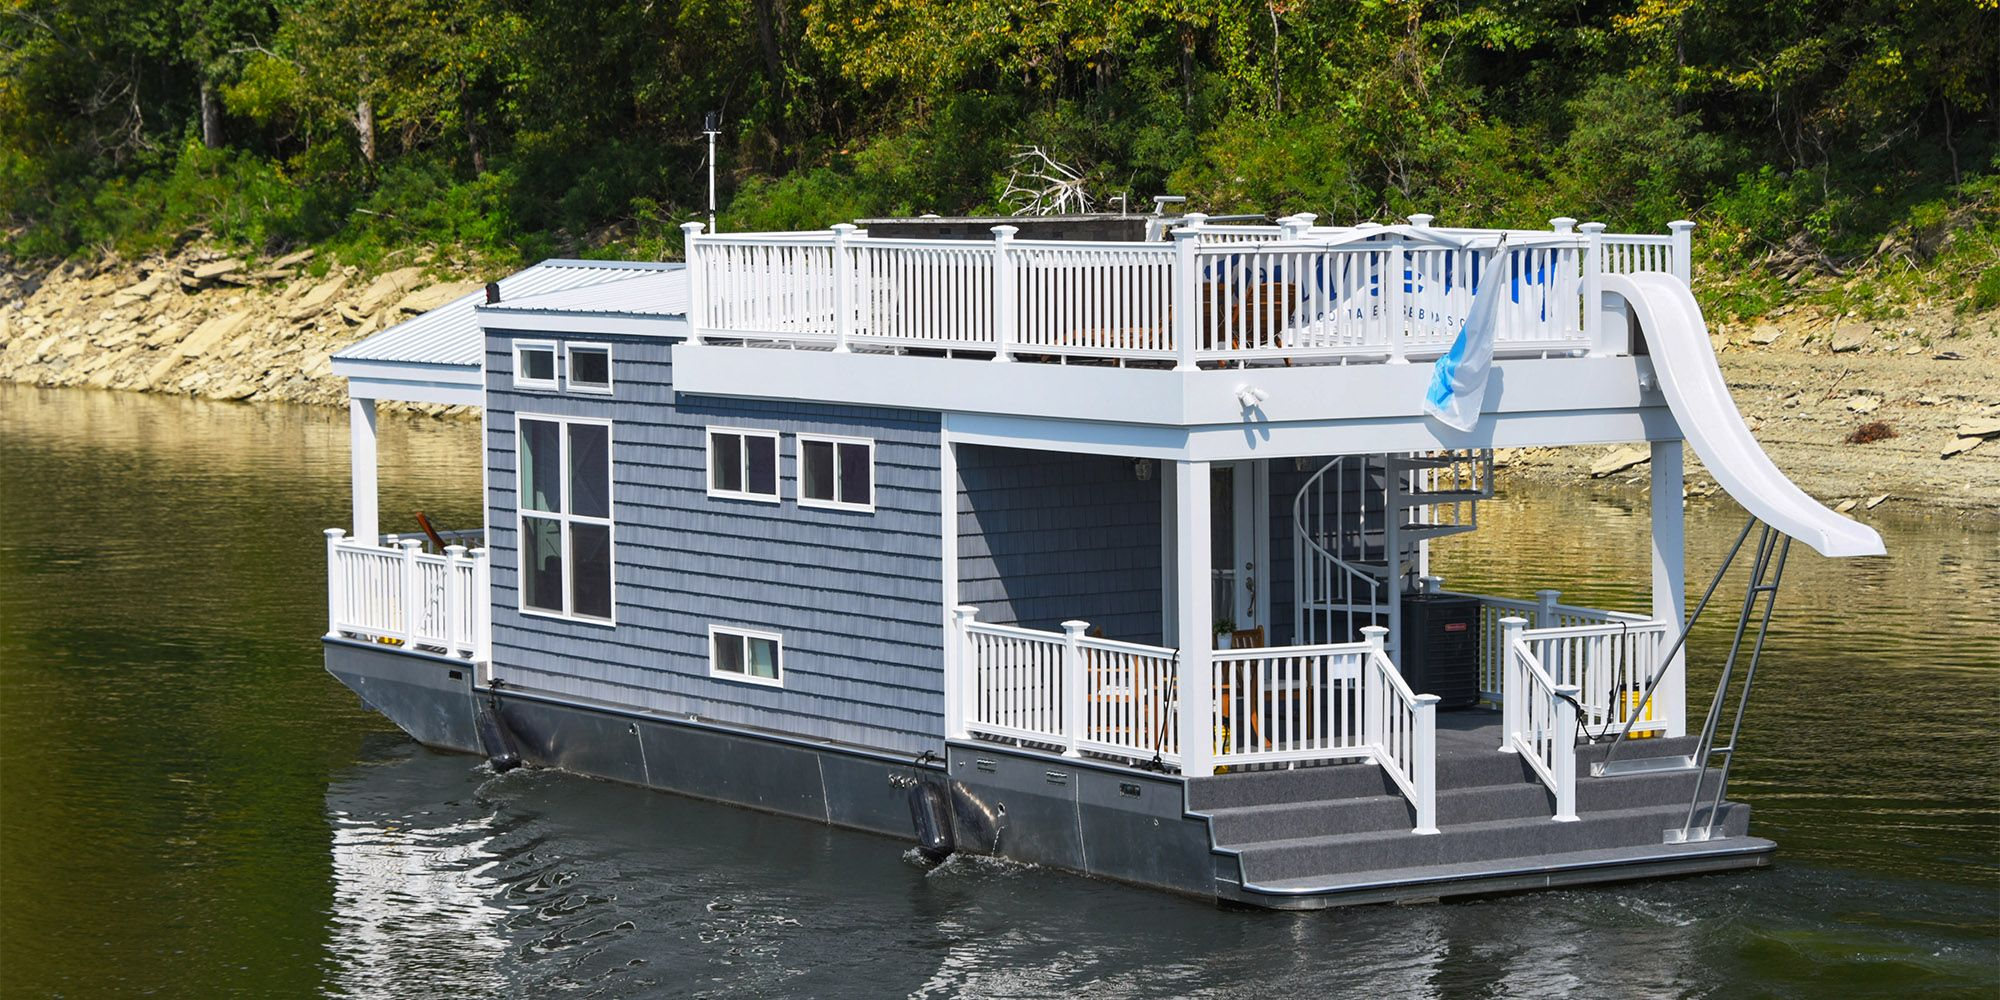 This Tiny Houseboat Is The Coolest Thing To Float On Water